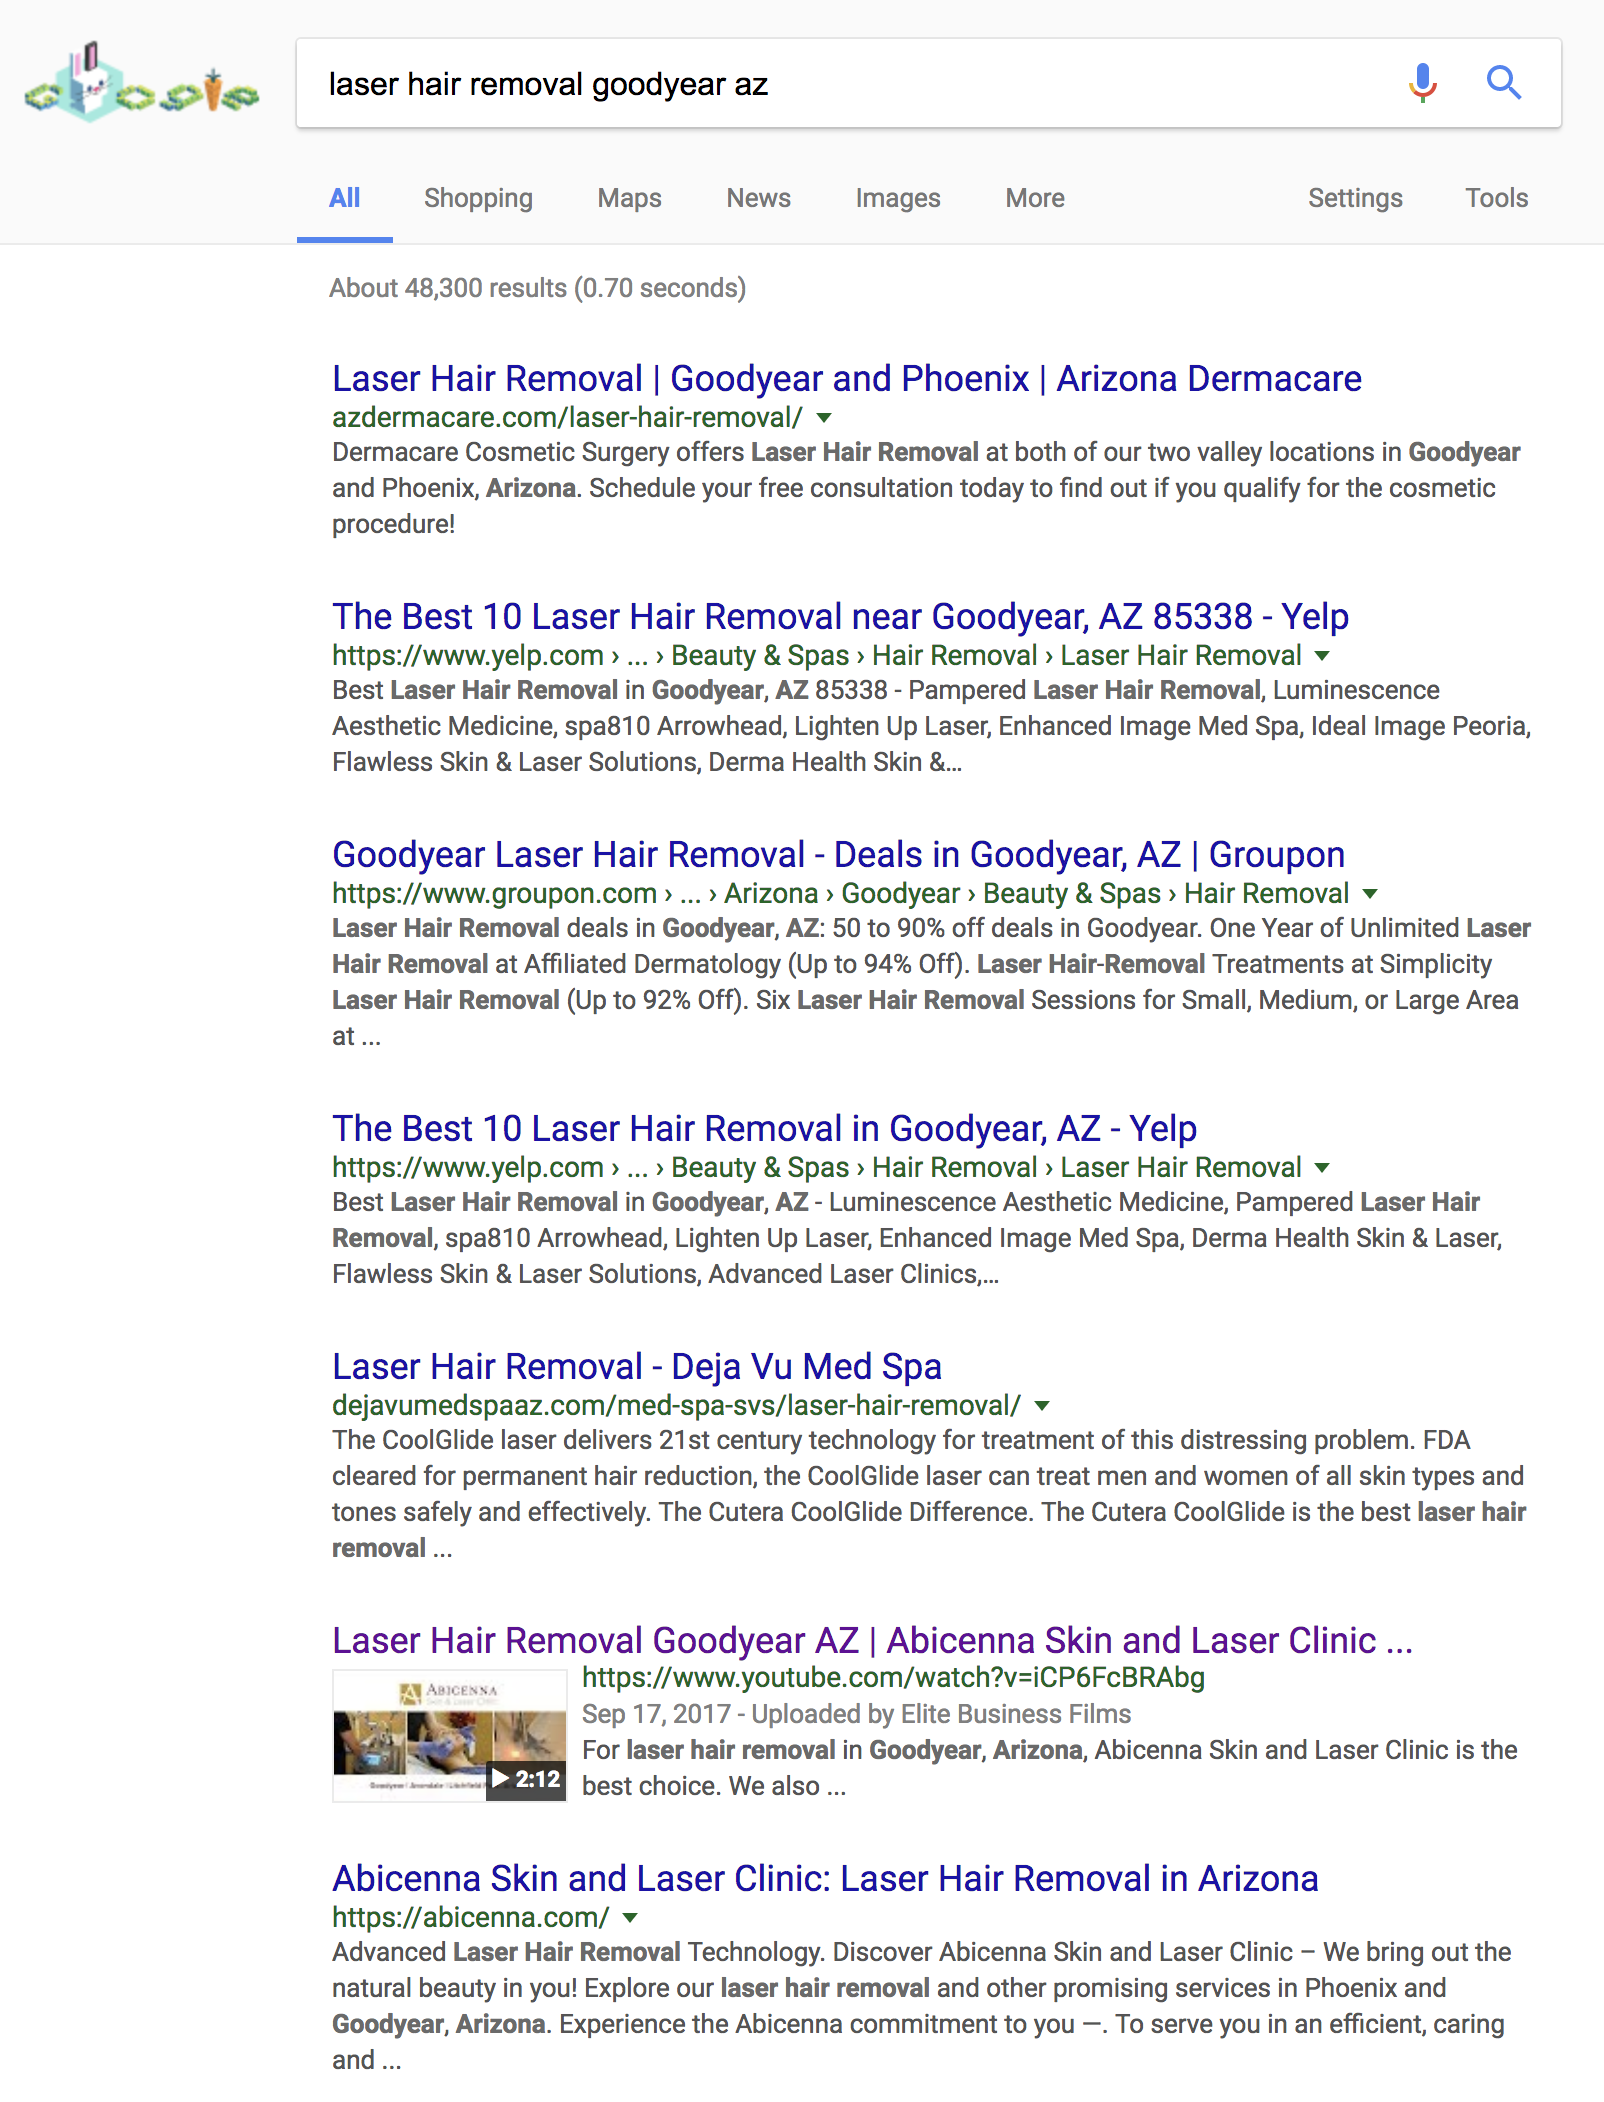 Abicenna Skin & Laser Clinic - Page 1 in Google Search - top videoKeyword: laser hair removal goodyear az